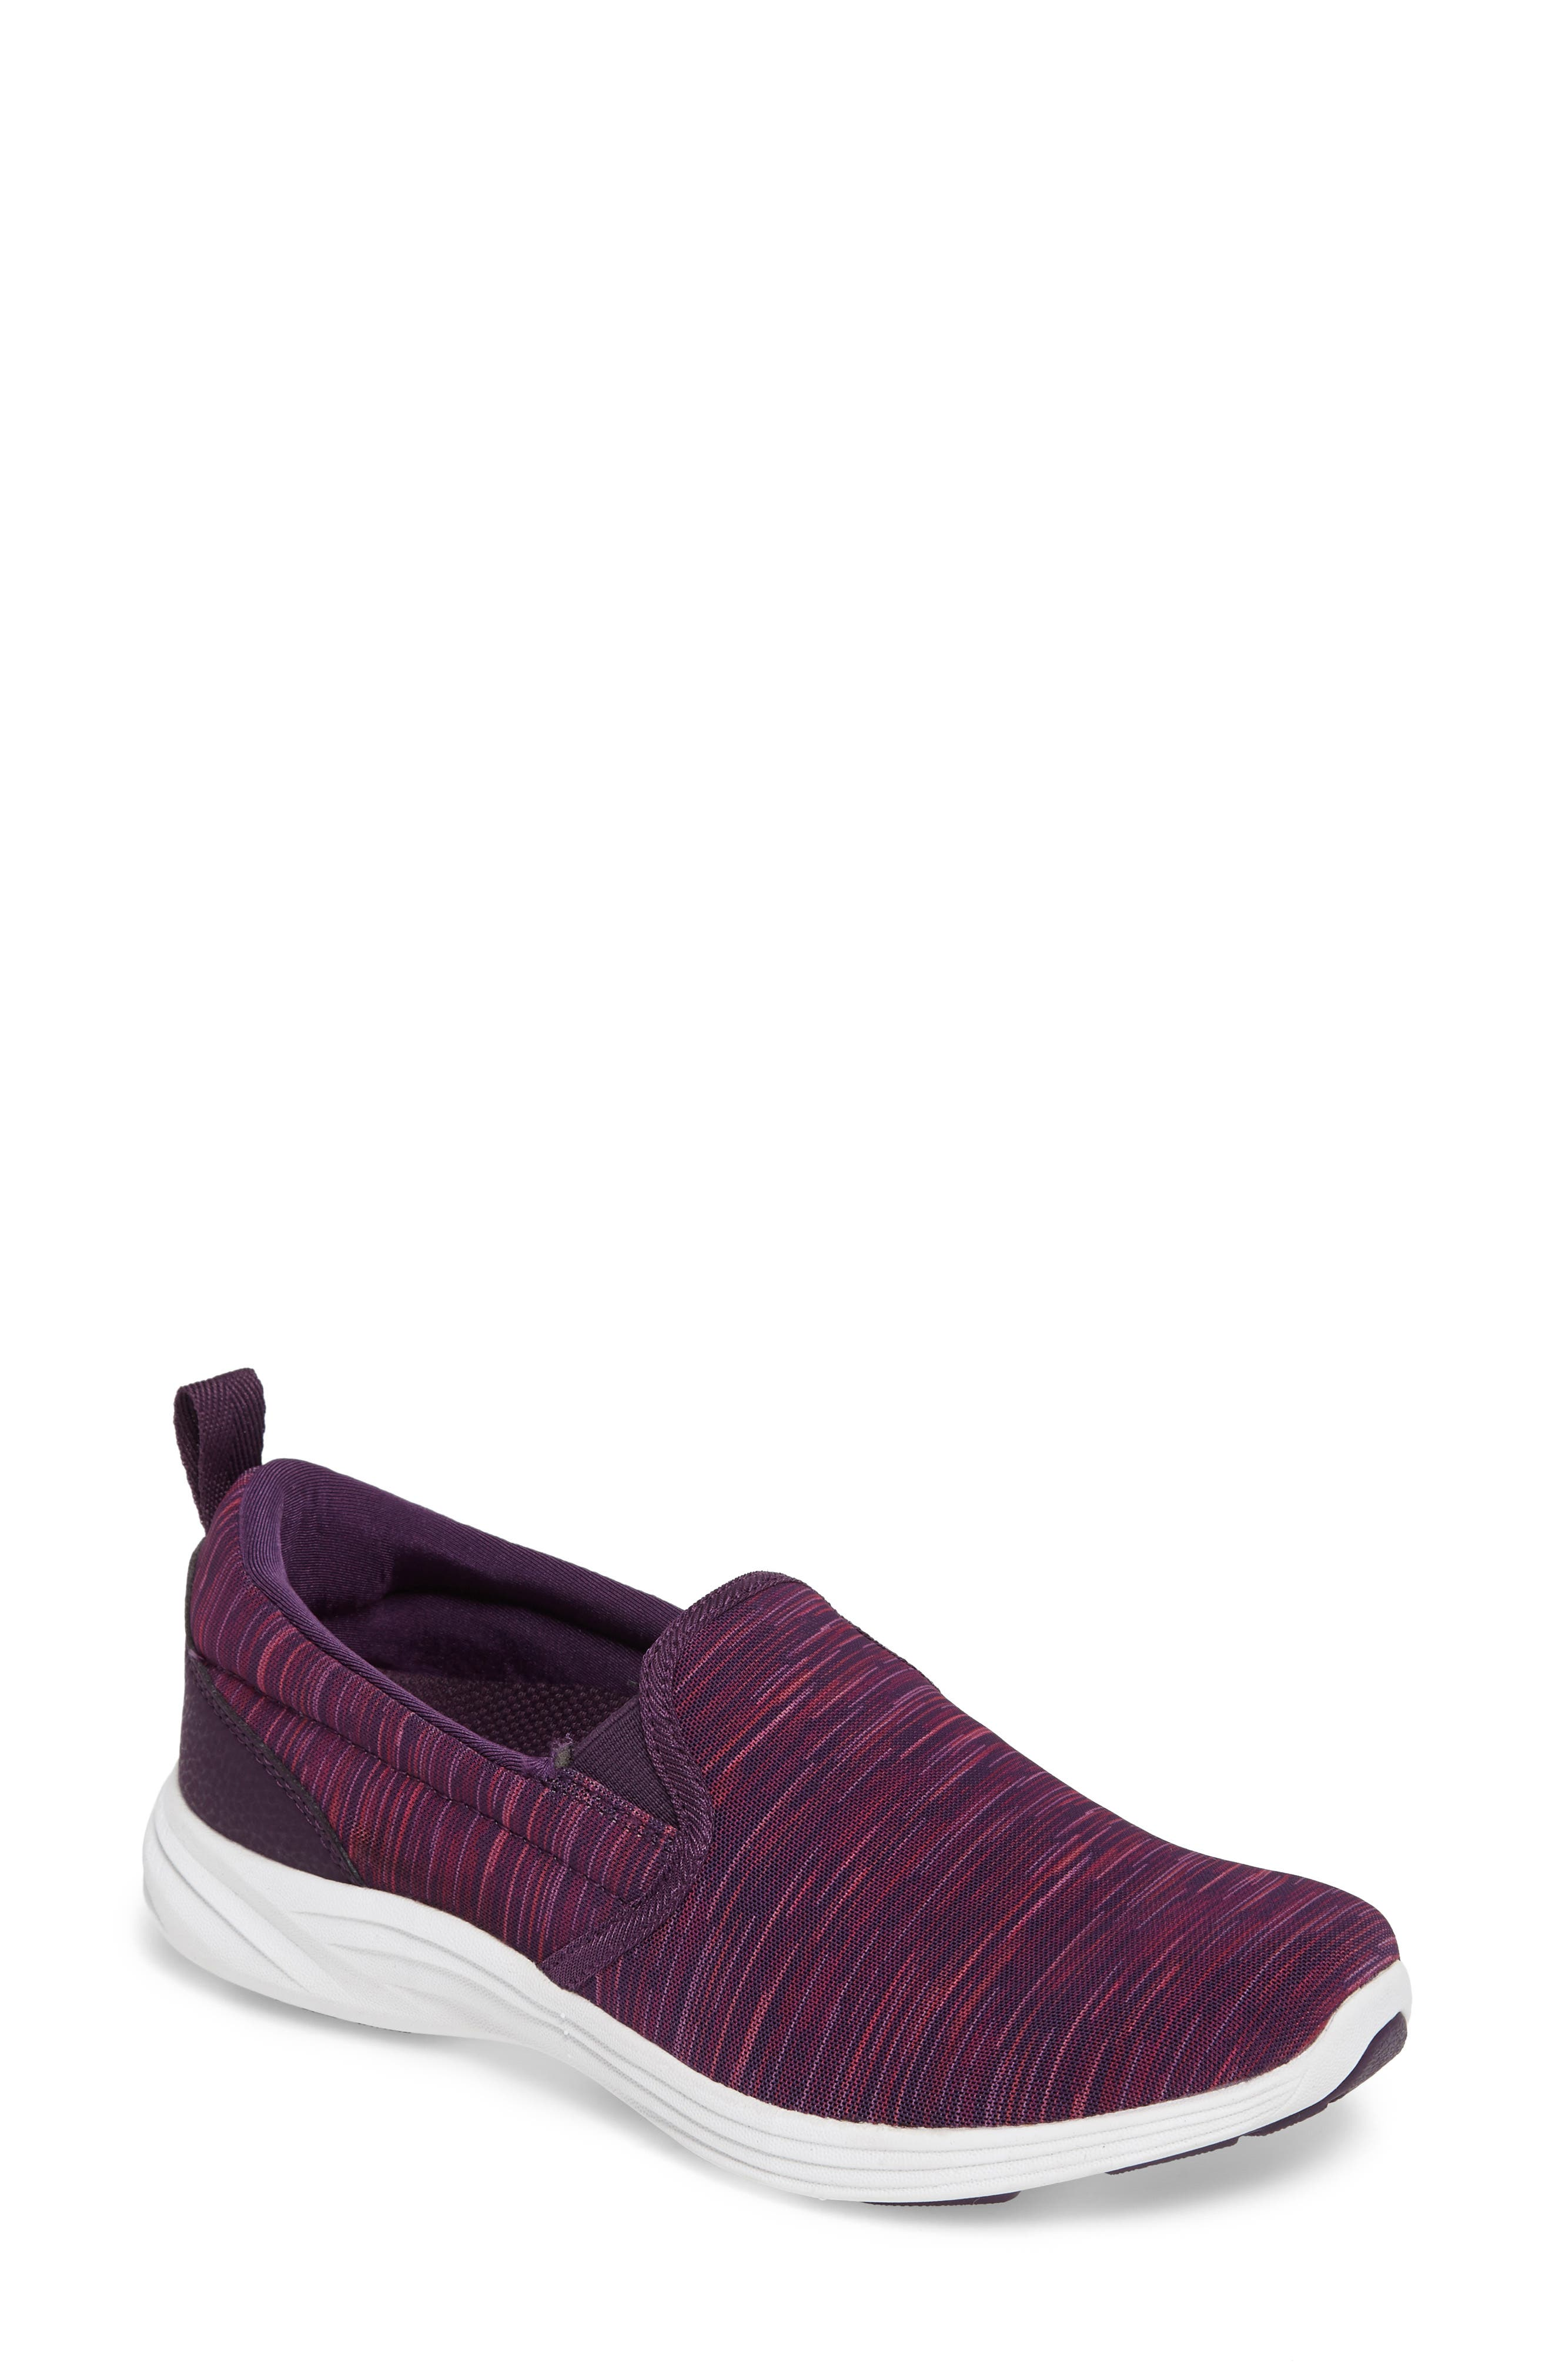 'Kea' Slip-On Sneaker,                             Main thumbnail 1, color,                             552